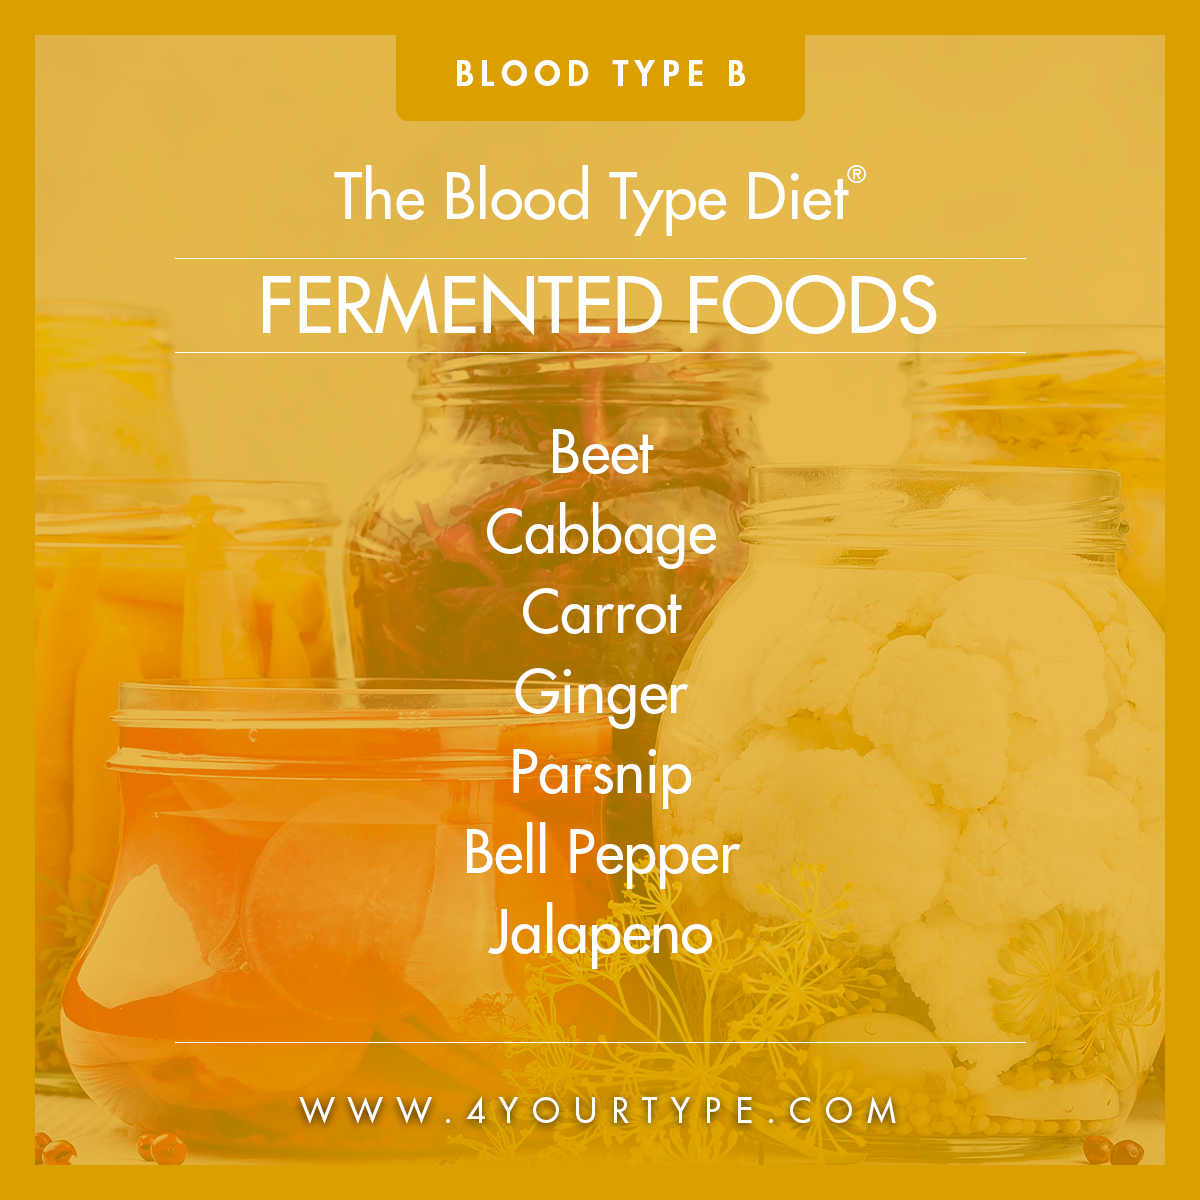 Blood Type B - Fermented Foods